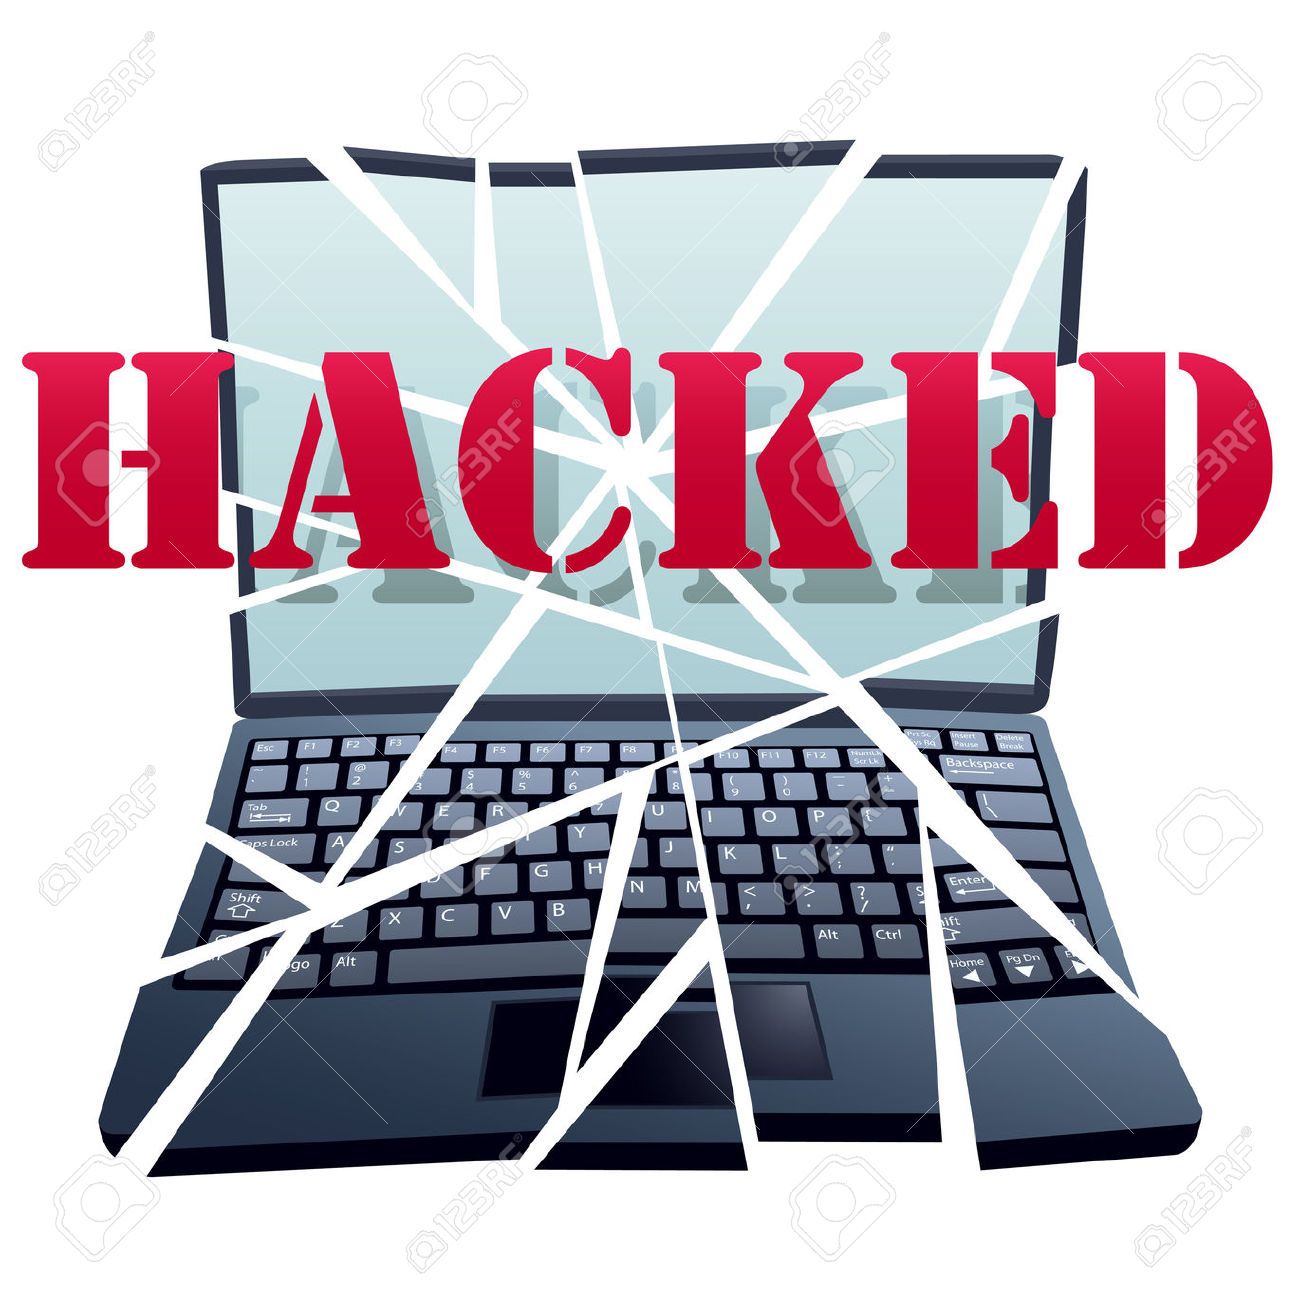 Don't Get Hacked